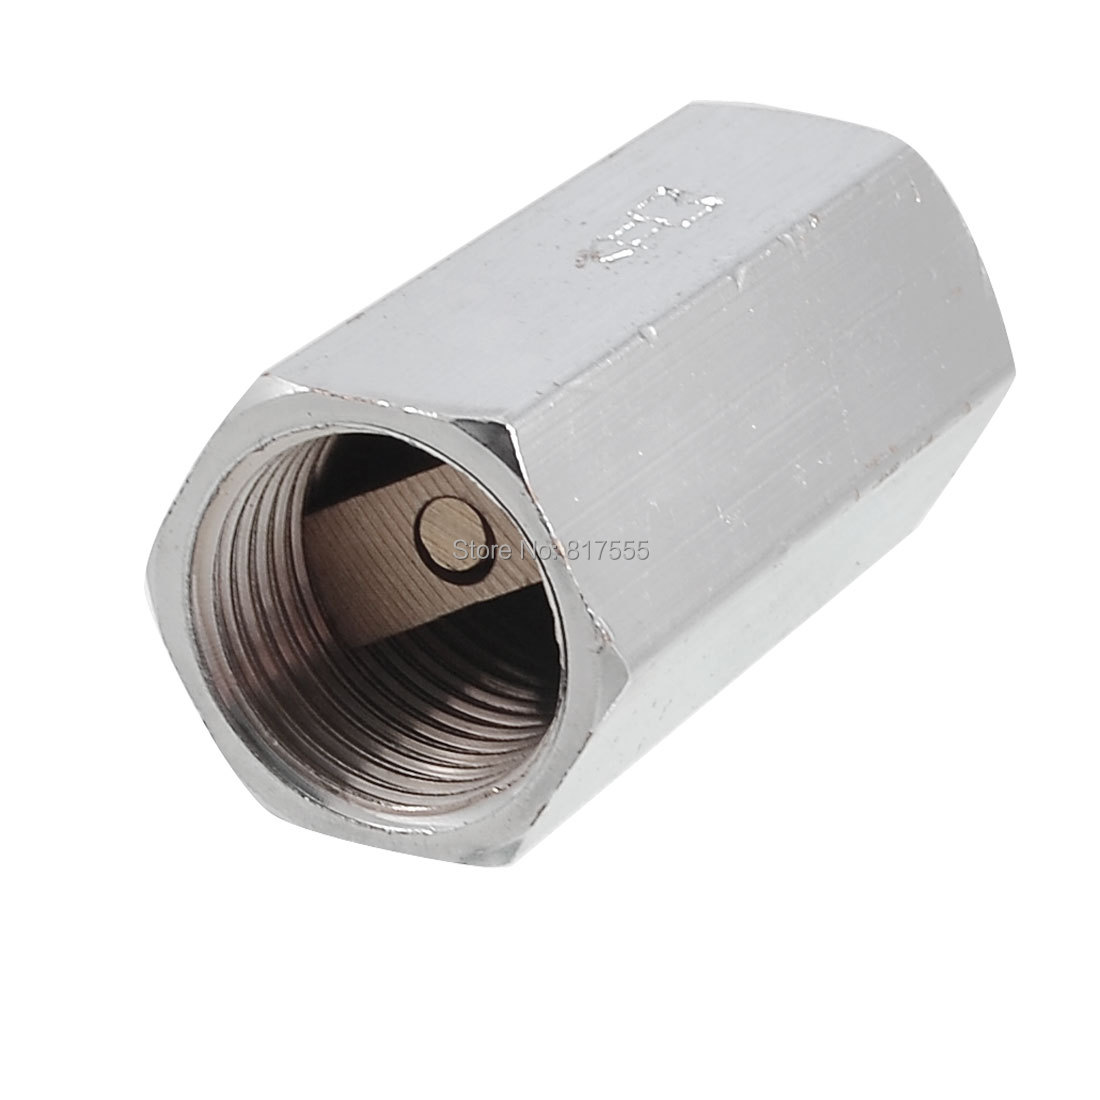 "Silver Tone Solid Brass 1/2"" PT Thread Pull Port One Way Check Valve Discount 50(China (Mainland))"